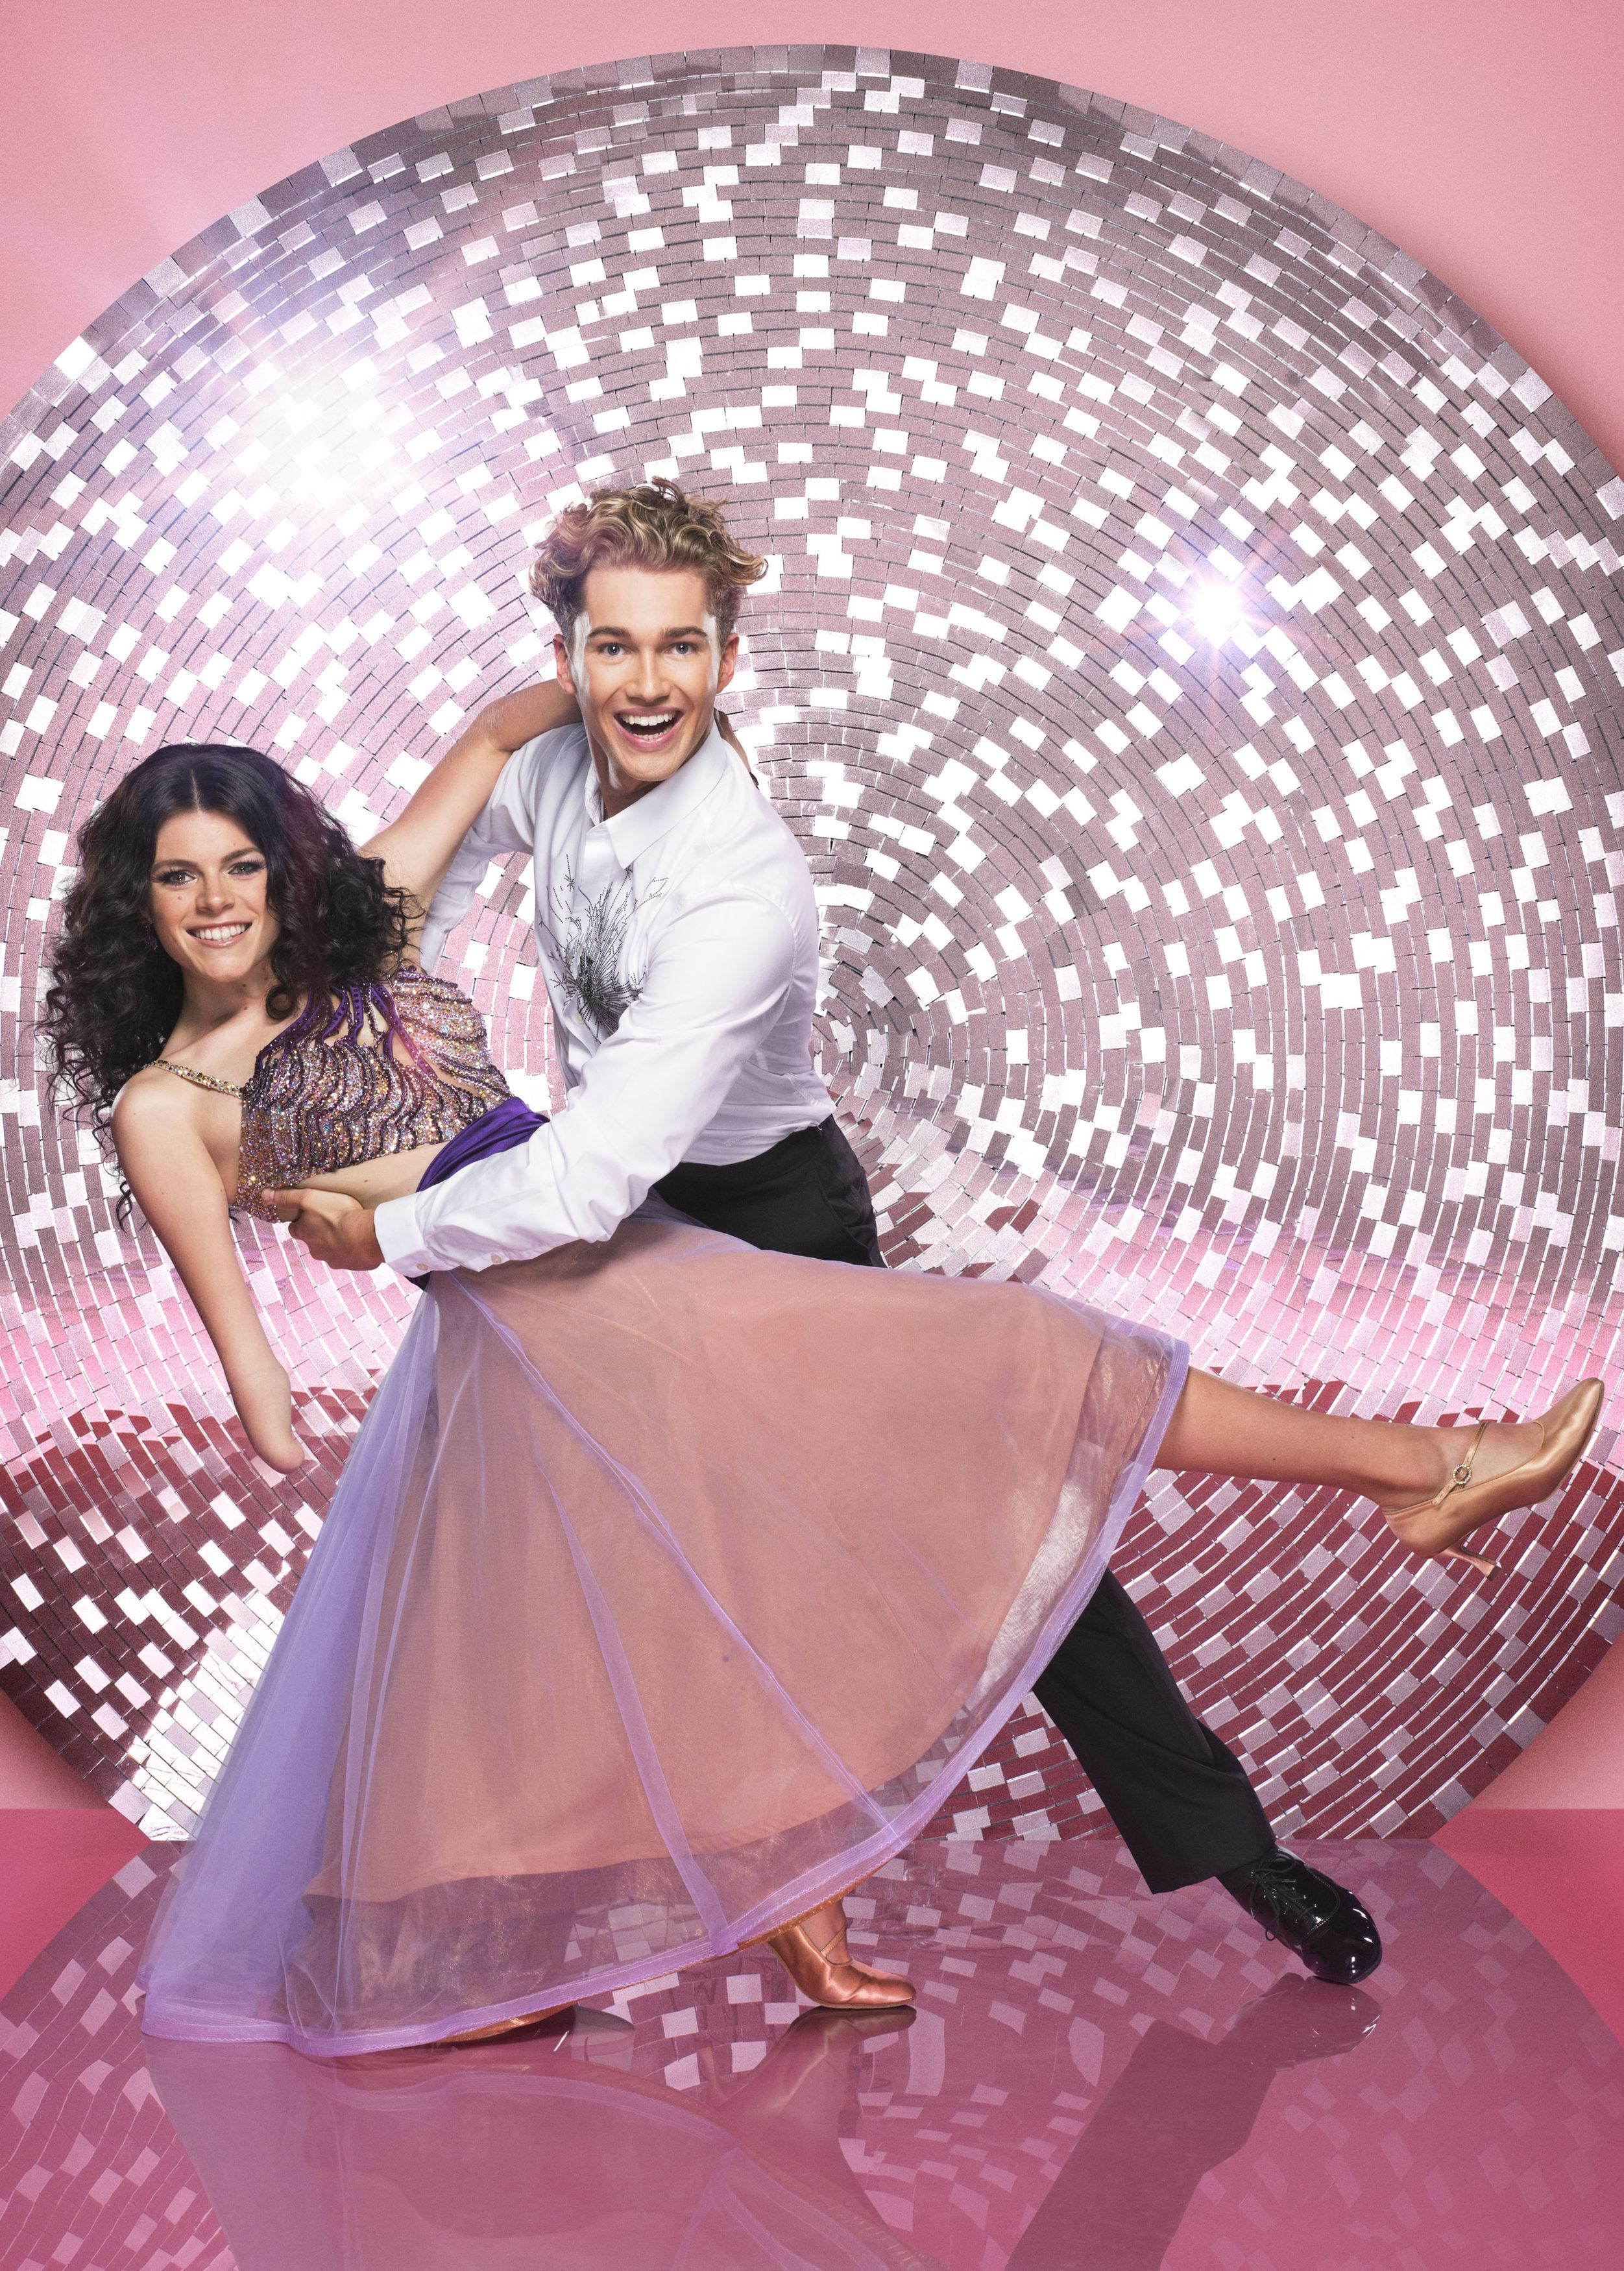 Lauren is paired with AJ Pritchard